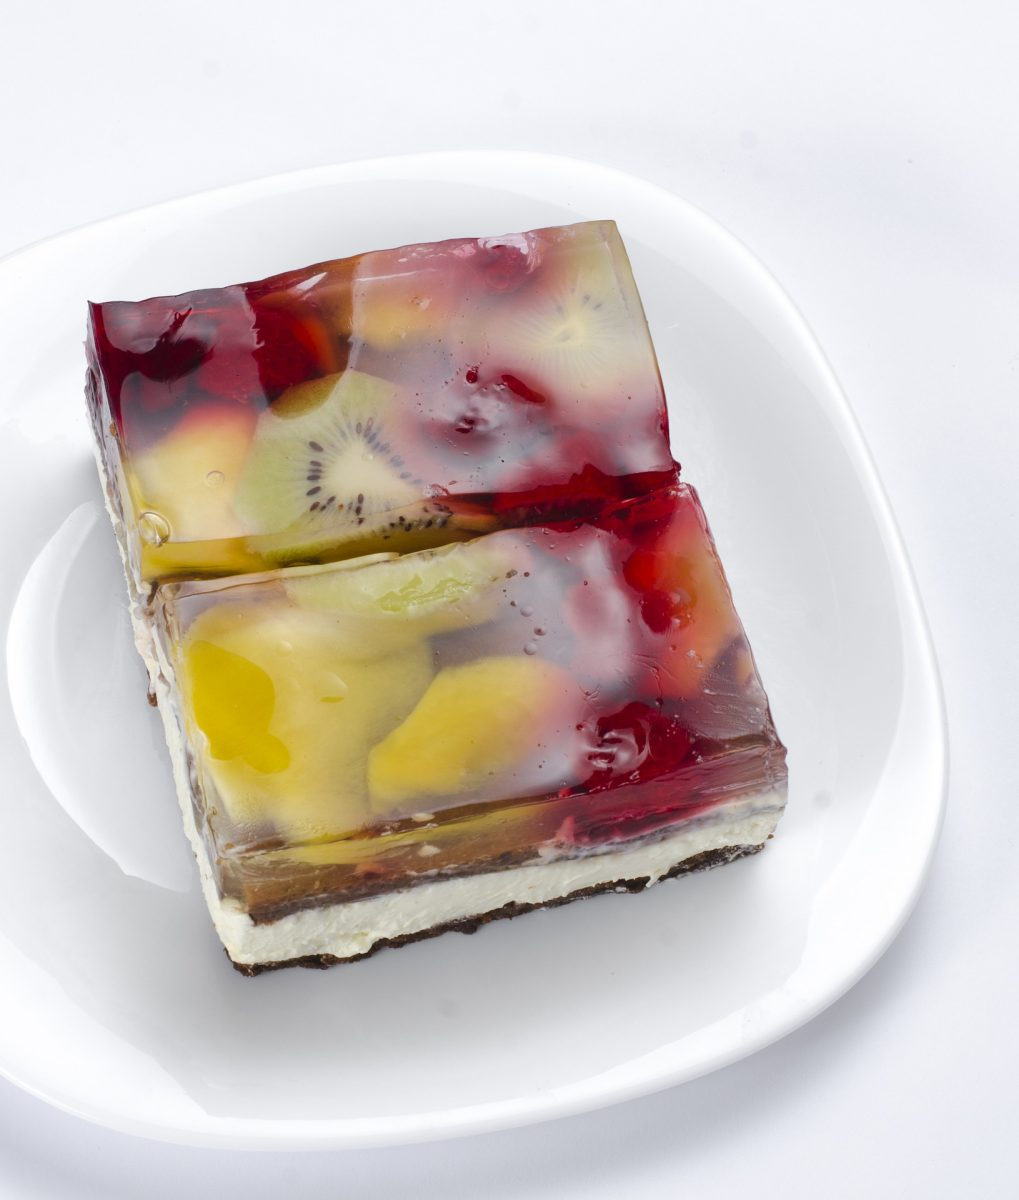 stained glass jello torte